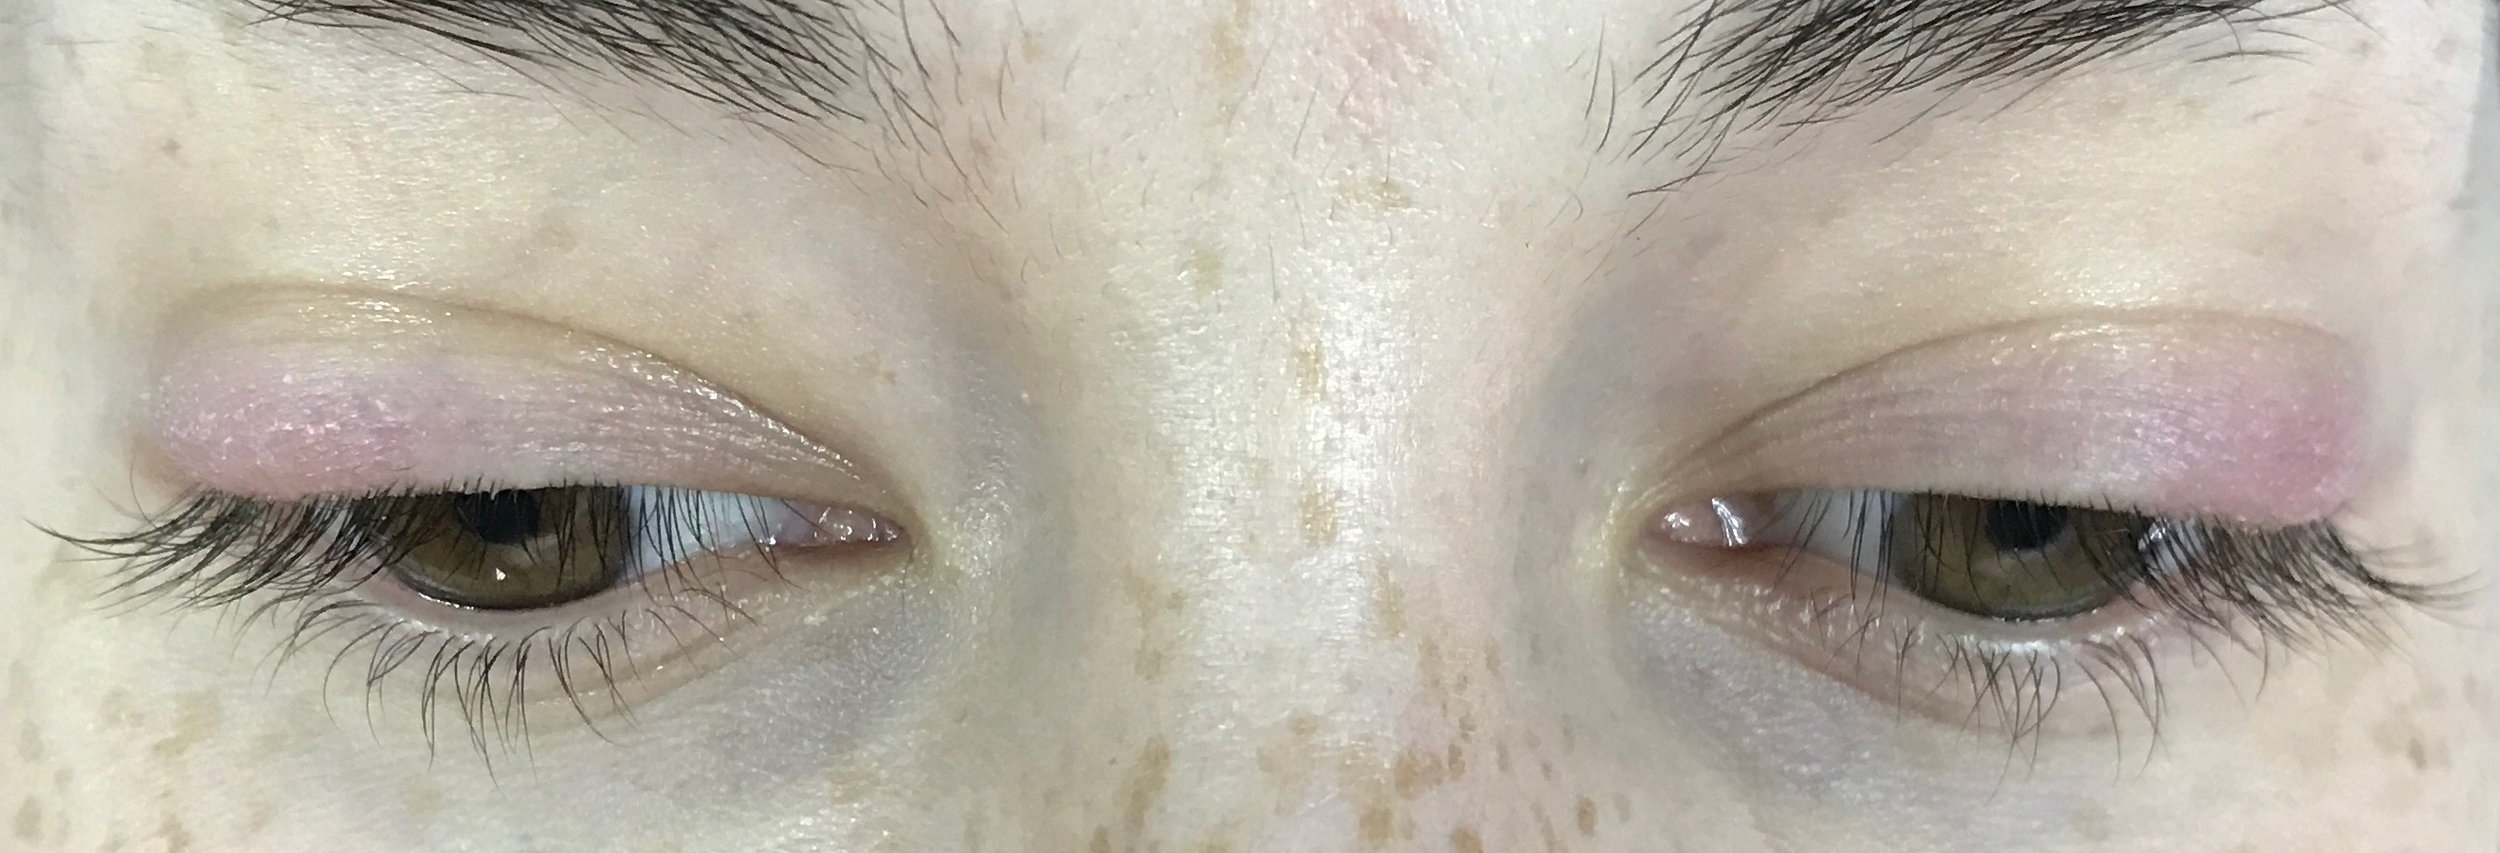 Lash reaction. - Swelling on eyelids from test patch.  Imagine if she had a full set without testing?  Her eyes would have been swollen shut!